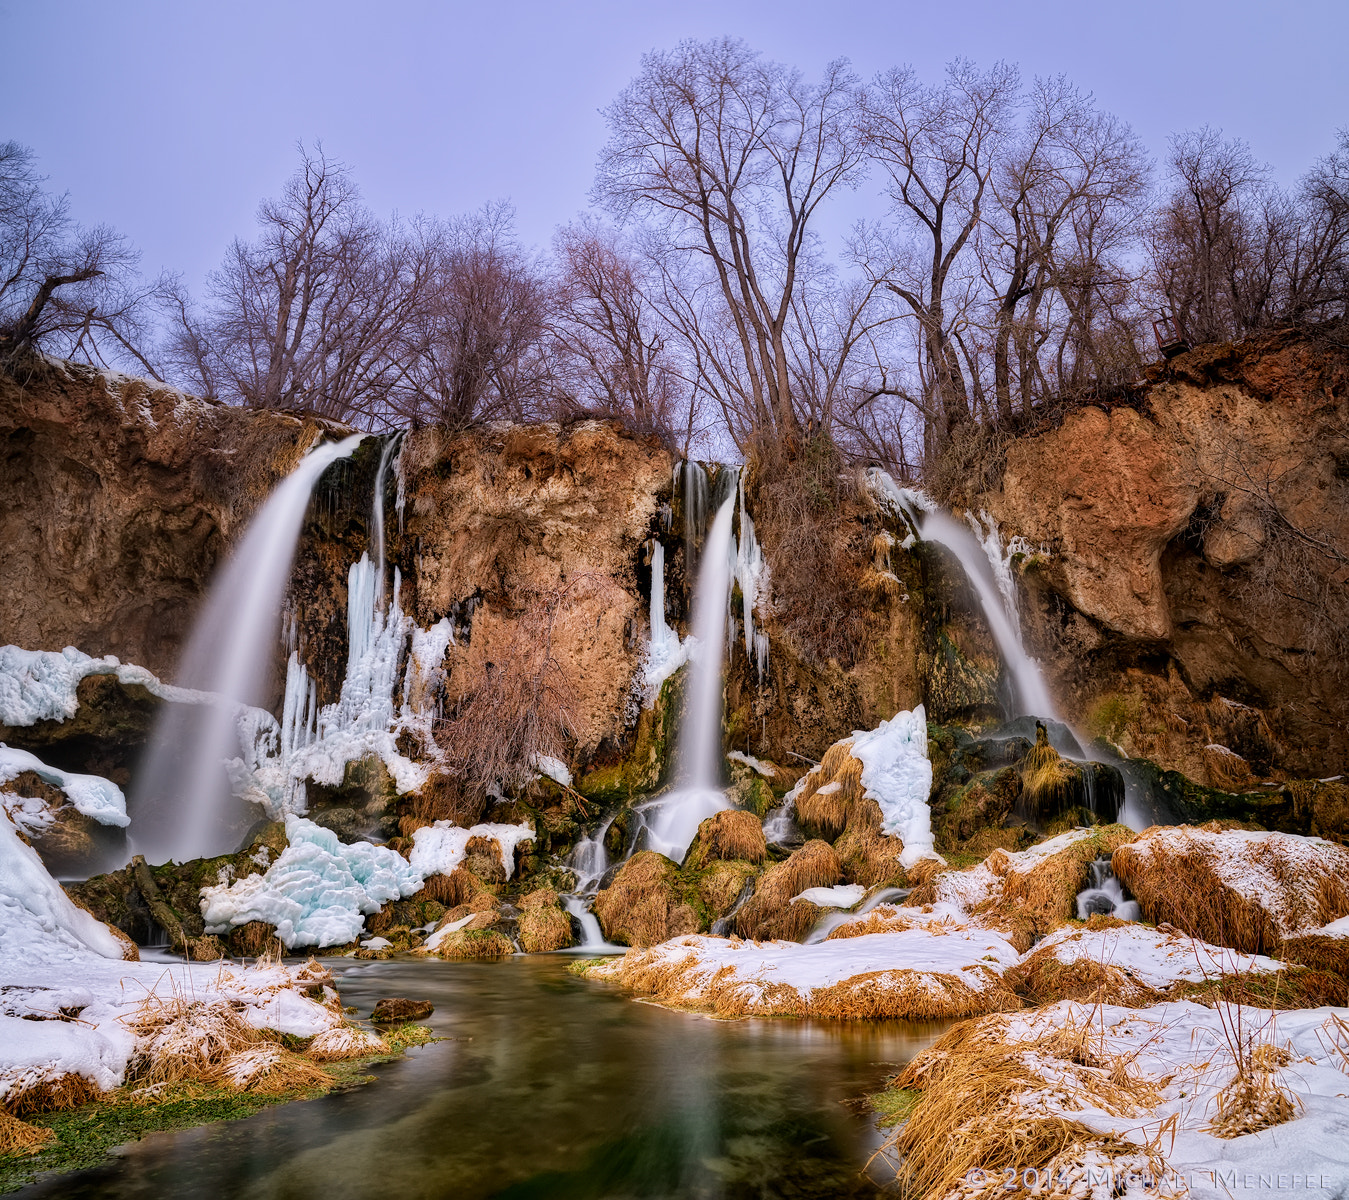 Photograph Winter at Rifle Falls State Park, Colorado by Michael Menefee on 500px